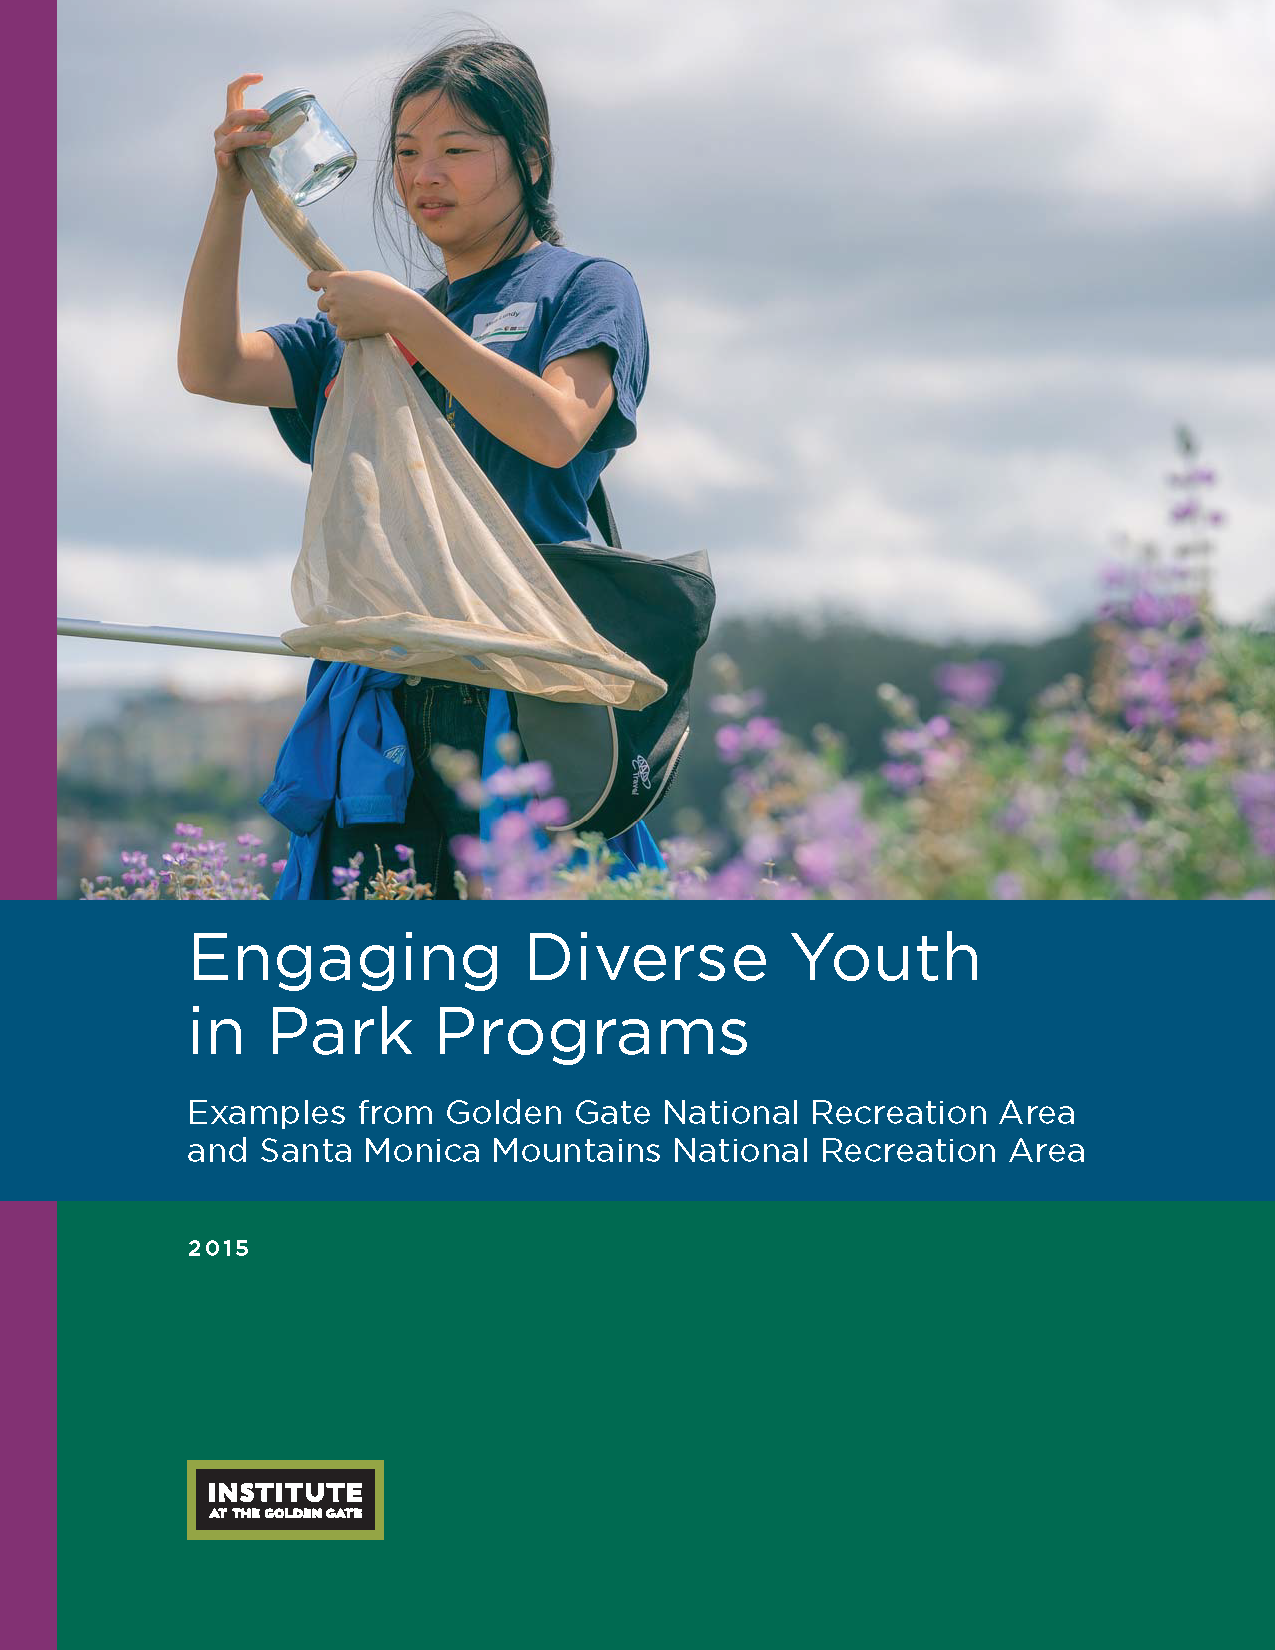 Engaging Youth Cover Image